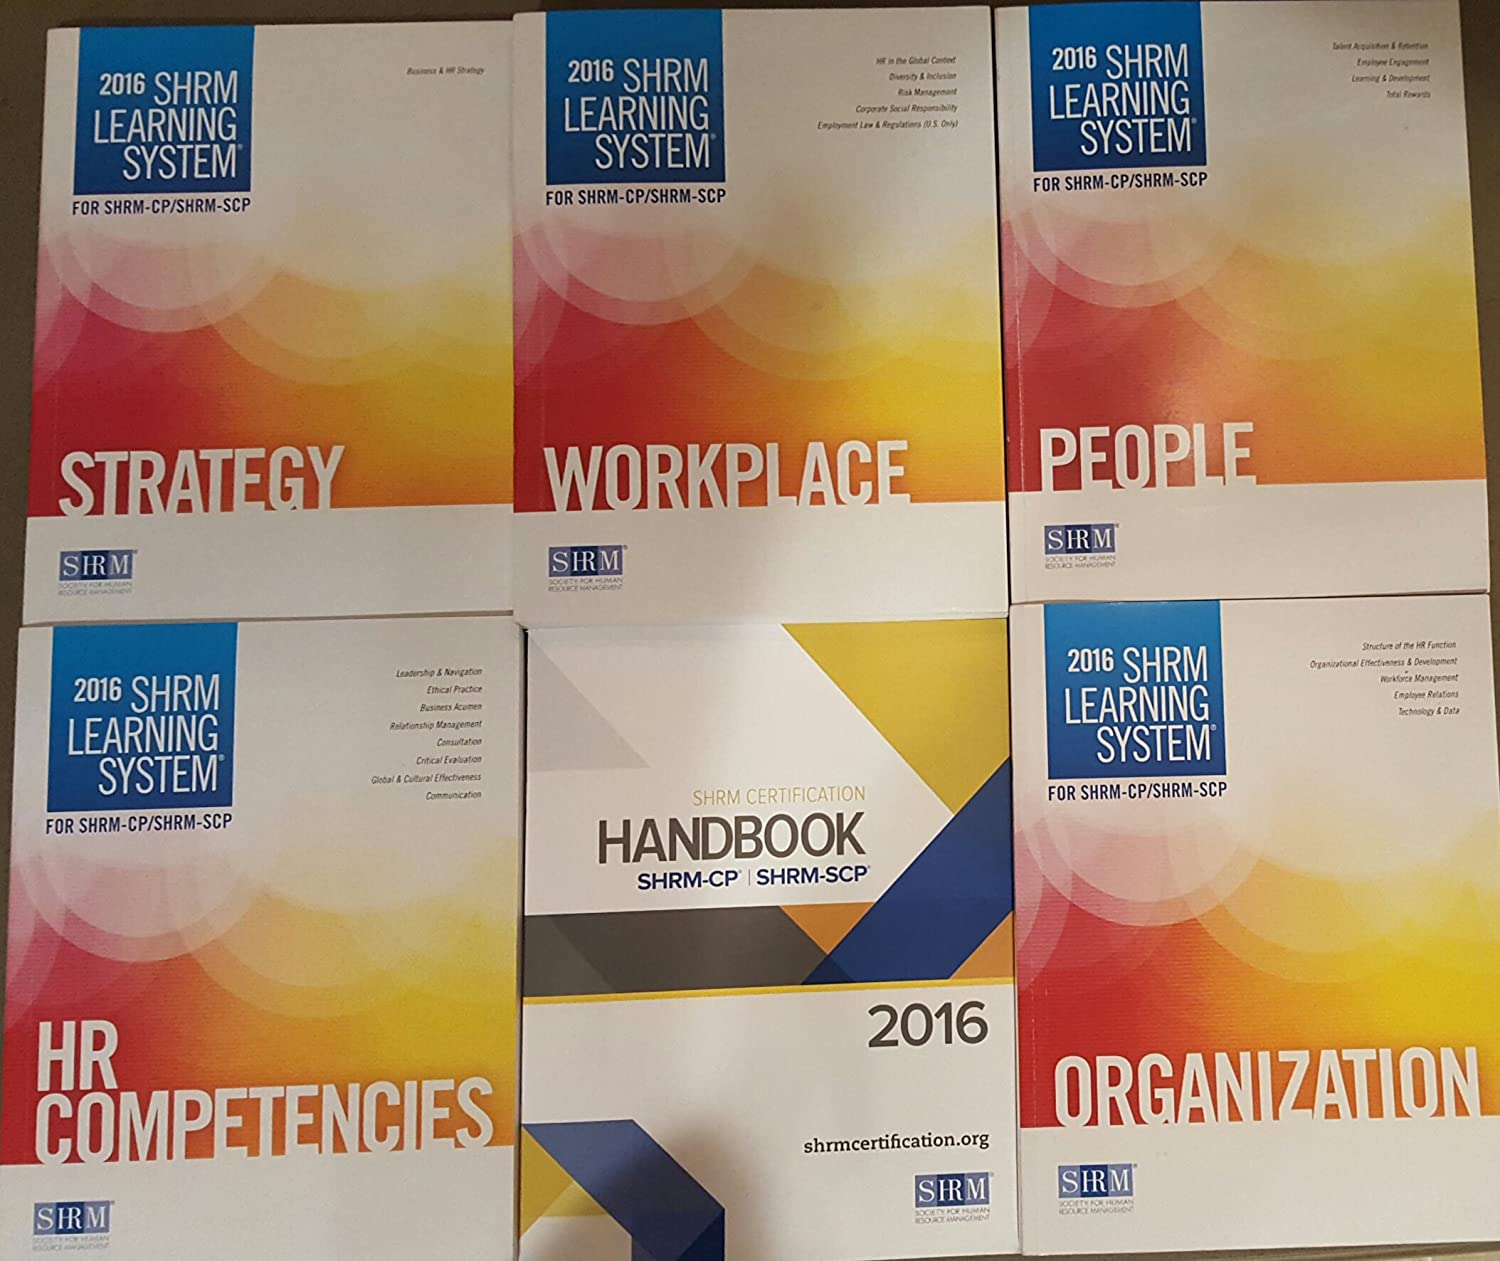 2016 shrm learning system for shrm cp and shrm scp amazon 2016 shrm learning system for shrm cp and shrm scp amazon industrial scientific 1betcityfo Image collections